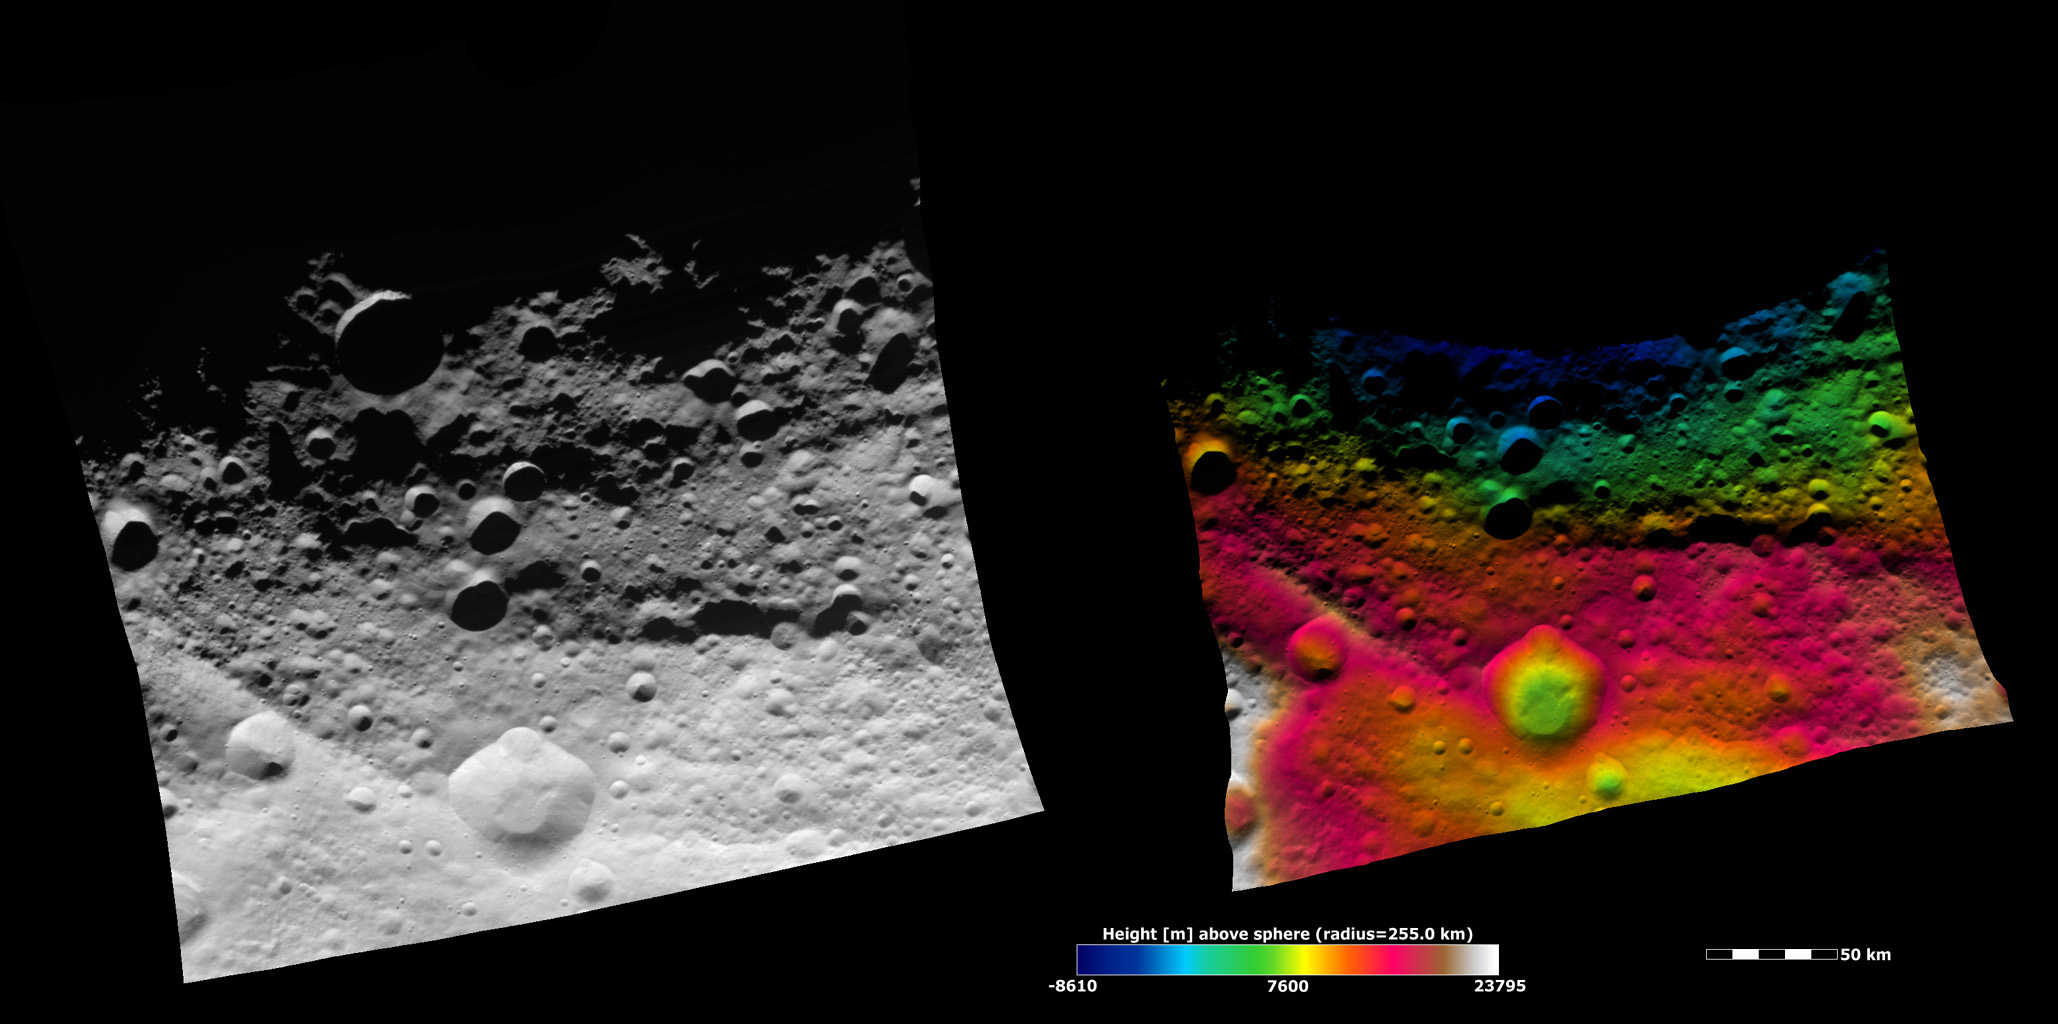 These images from NASA's Dawn spacecraft show part of asteroid Vesta's equatorial region, which contains a prominent, deep impact crater (lower center of images) and large troughs (linear depressions).